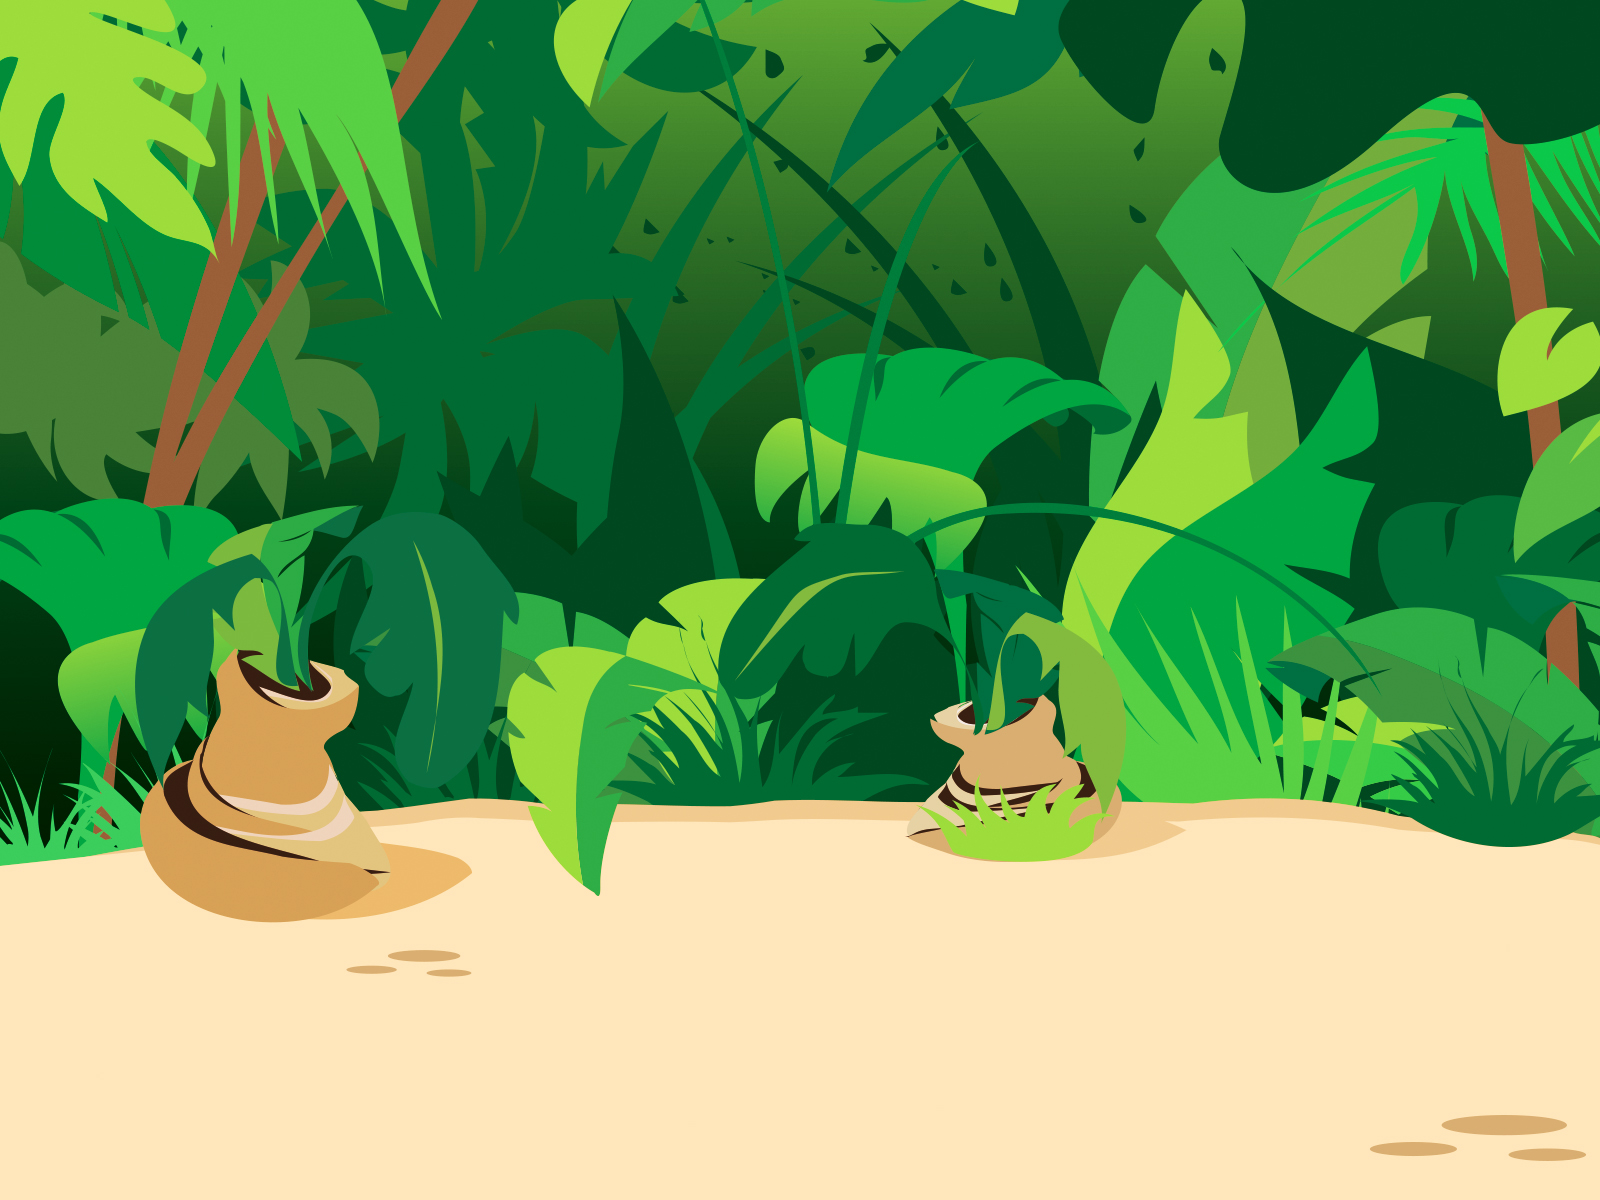 Jungle clipart powerpoint. Plants backgrounds green nature